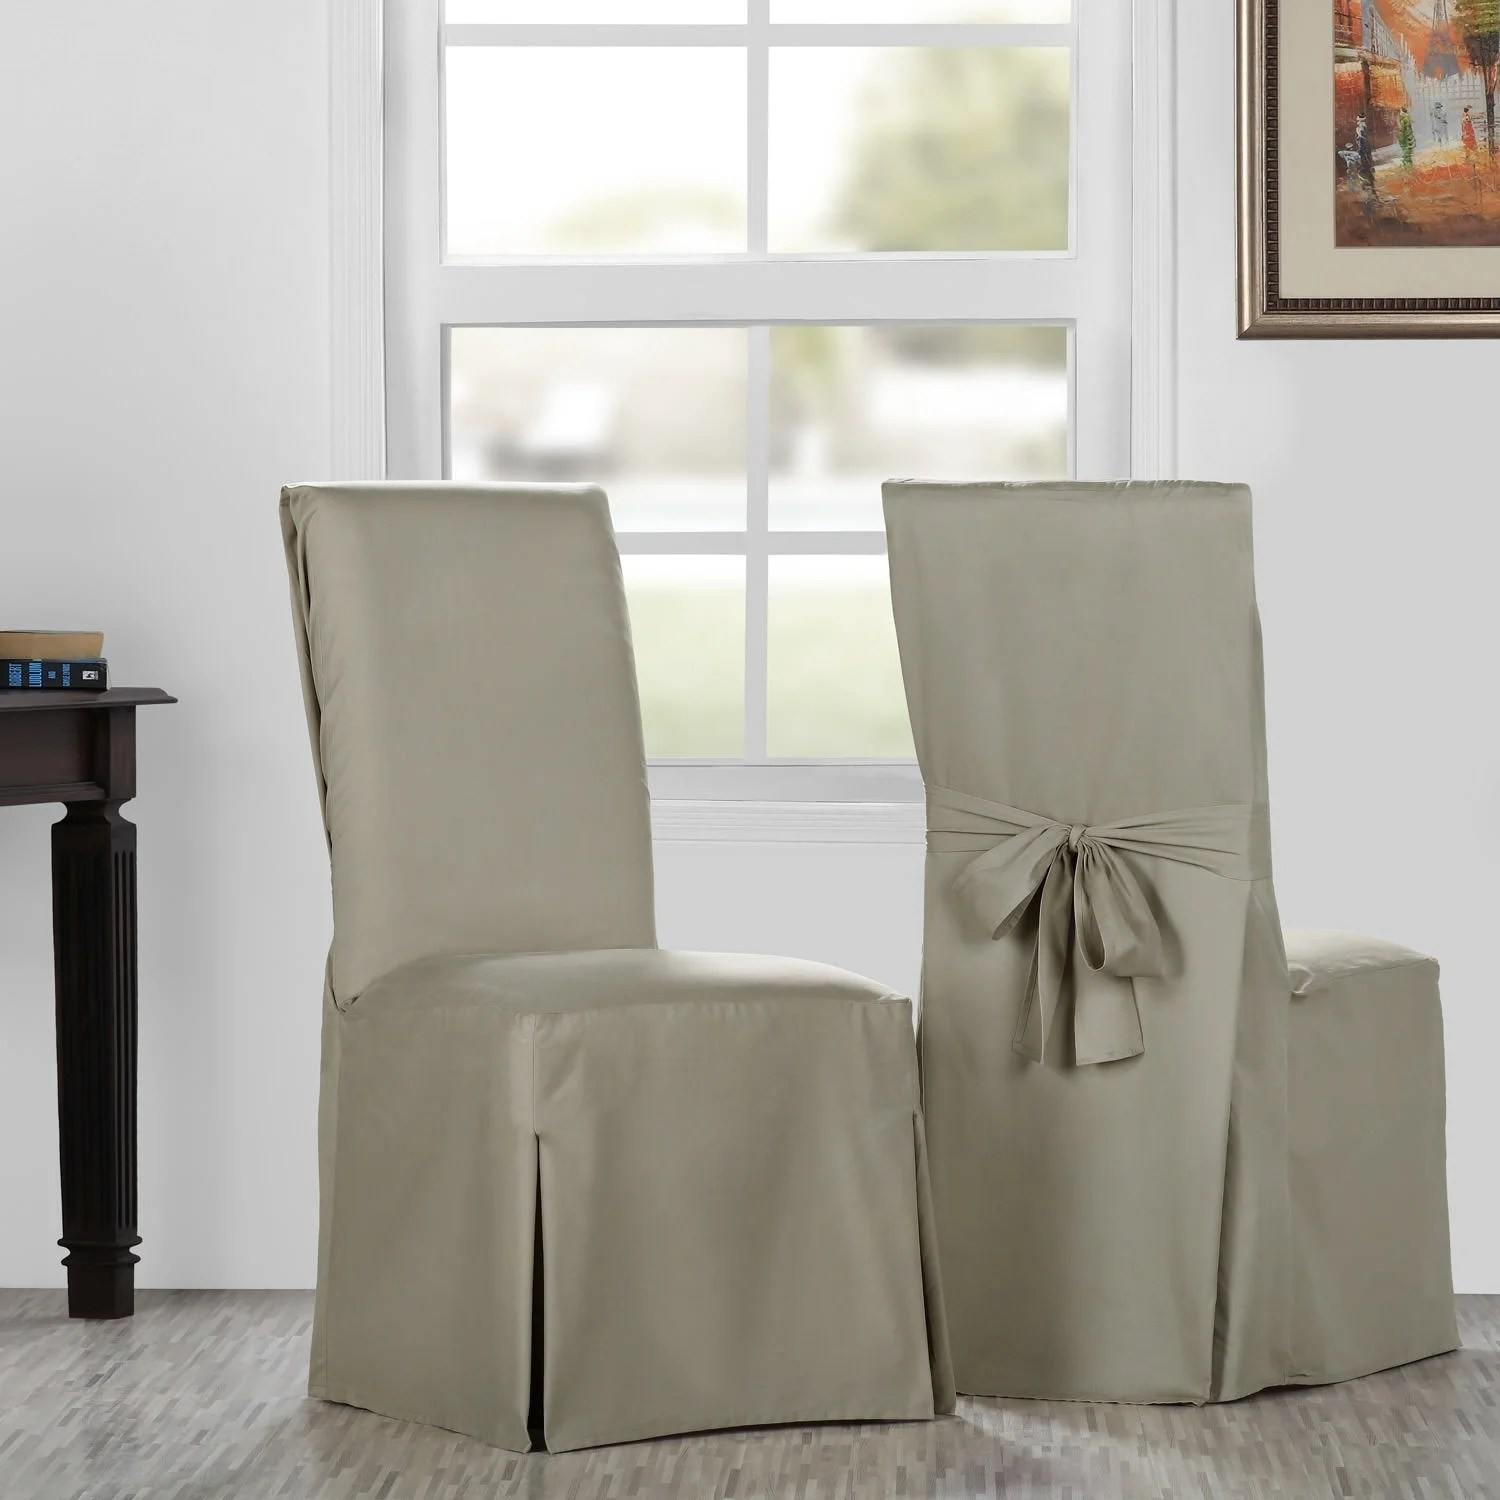 Slip Covers For Chairs Buy Cotton Chair Covers Slipcovers Online At Overstock Our